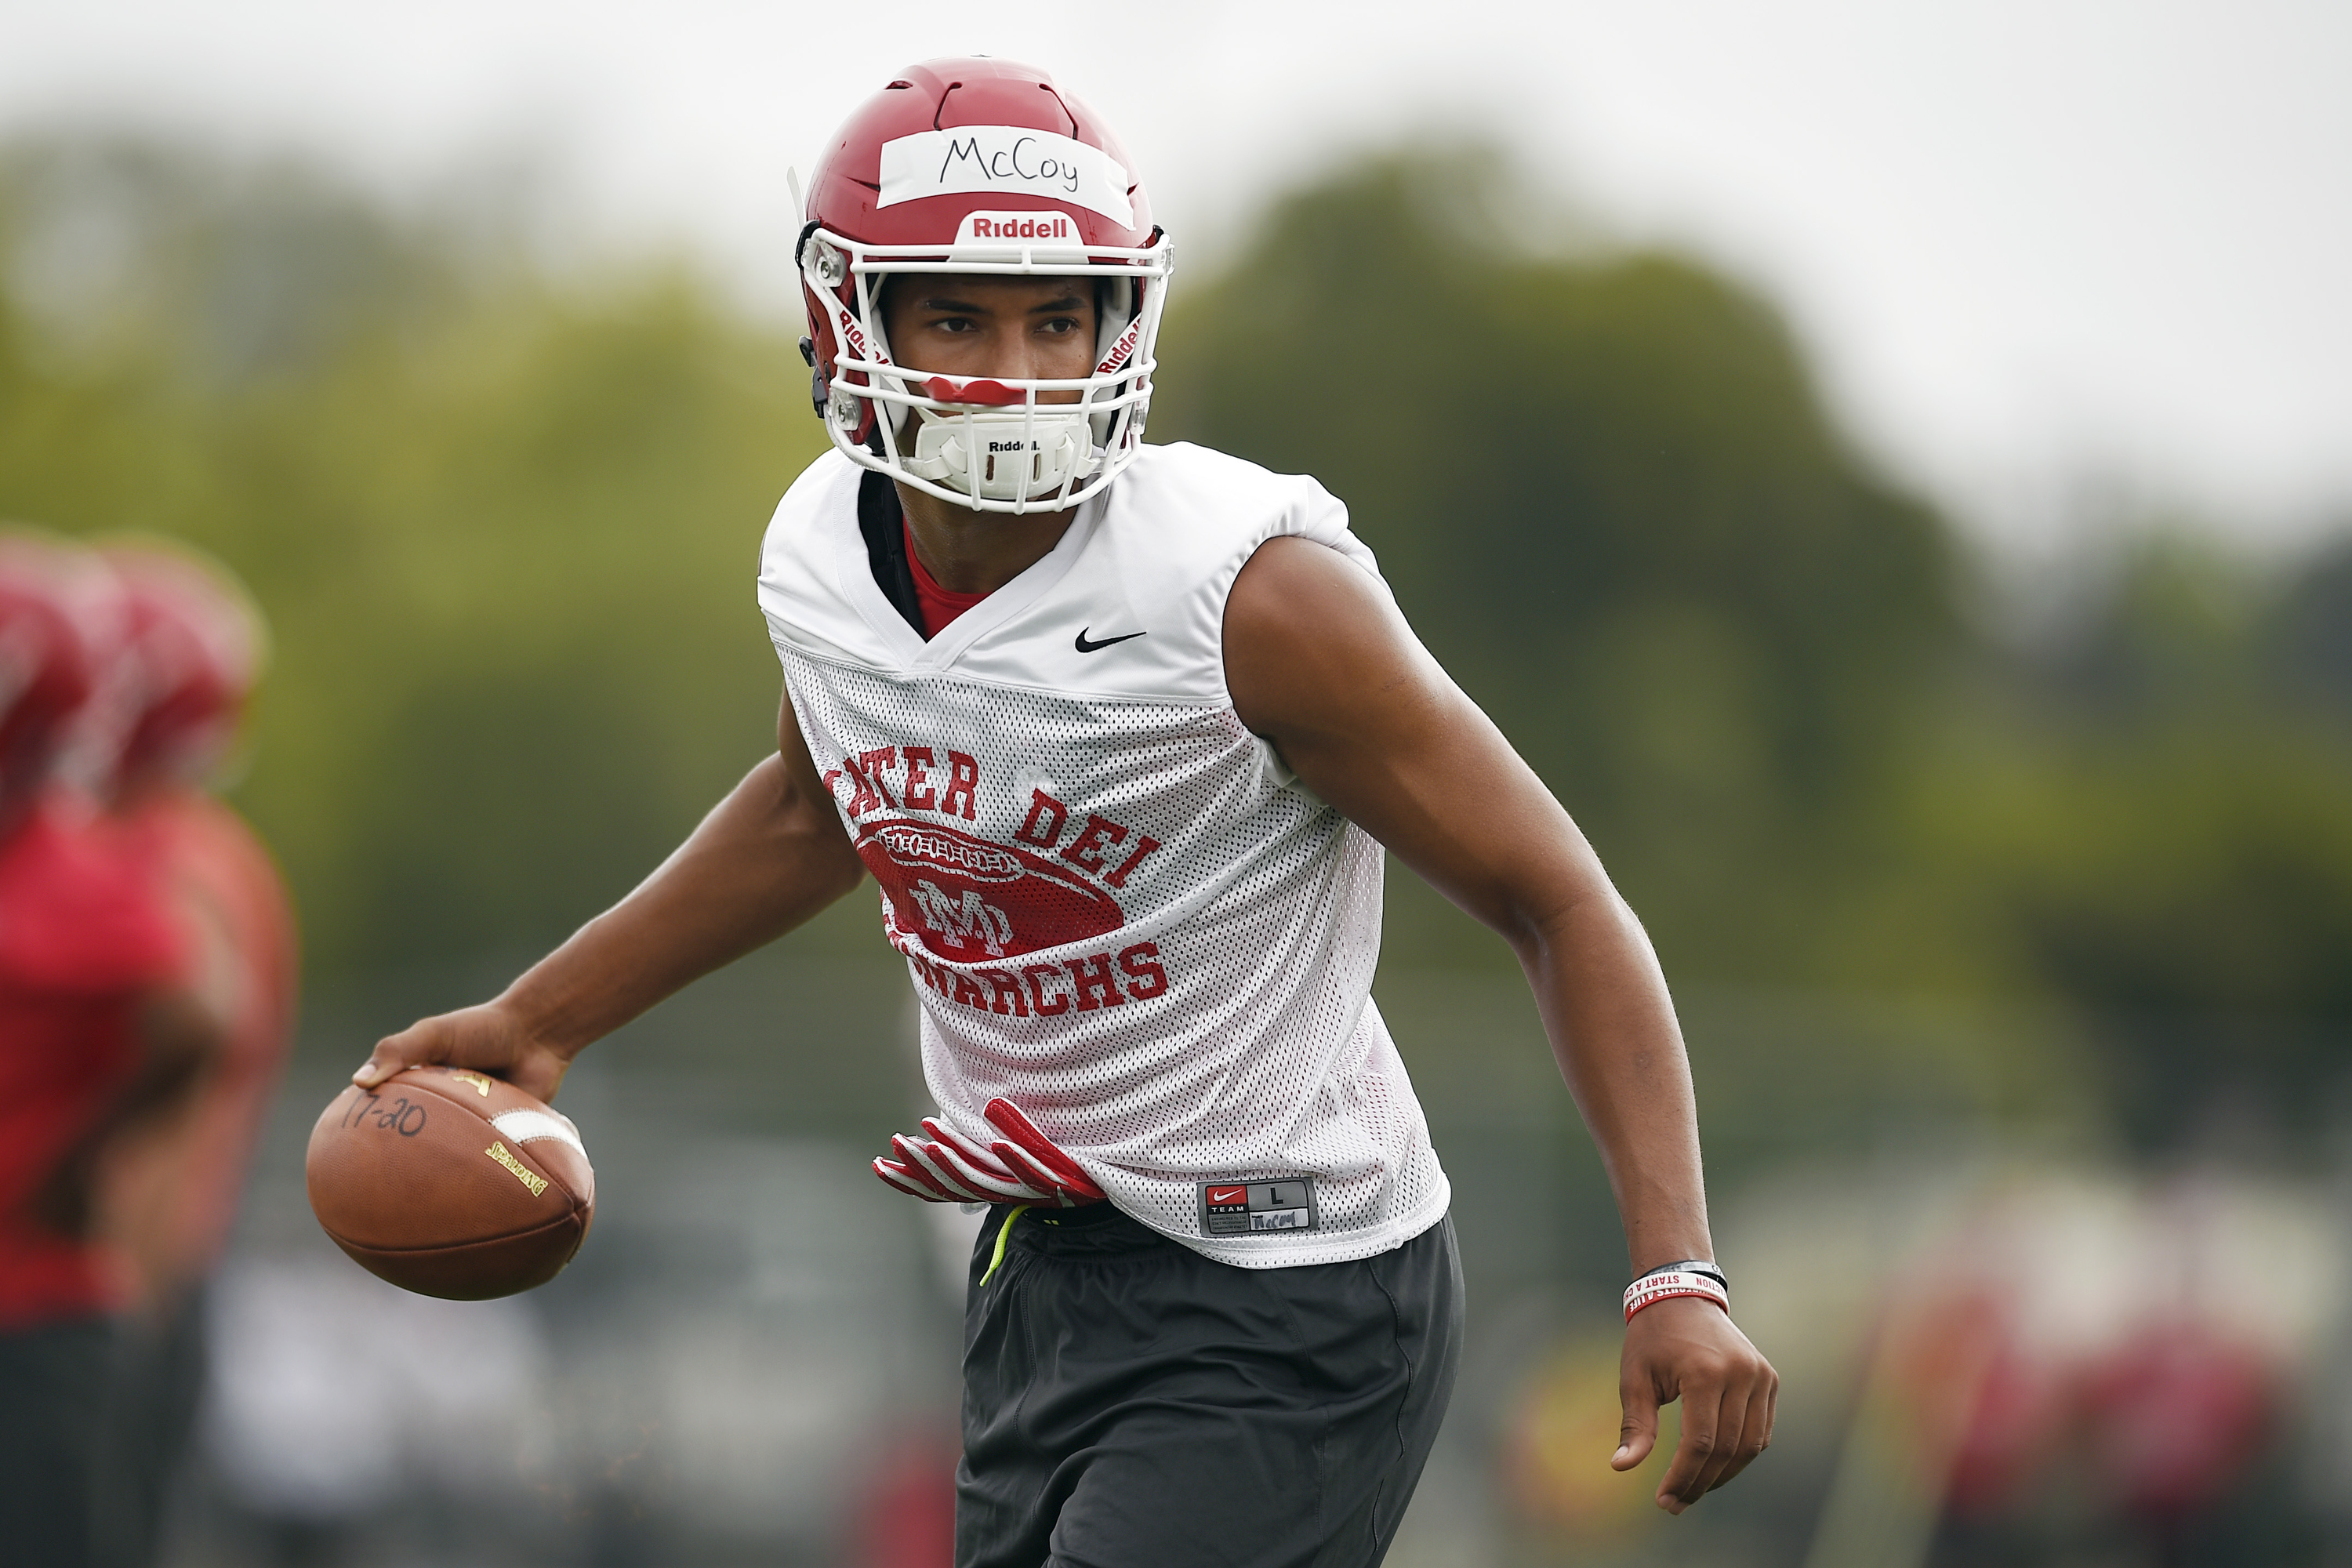 Super 25 football schedule for Aug. 24-26